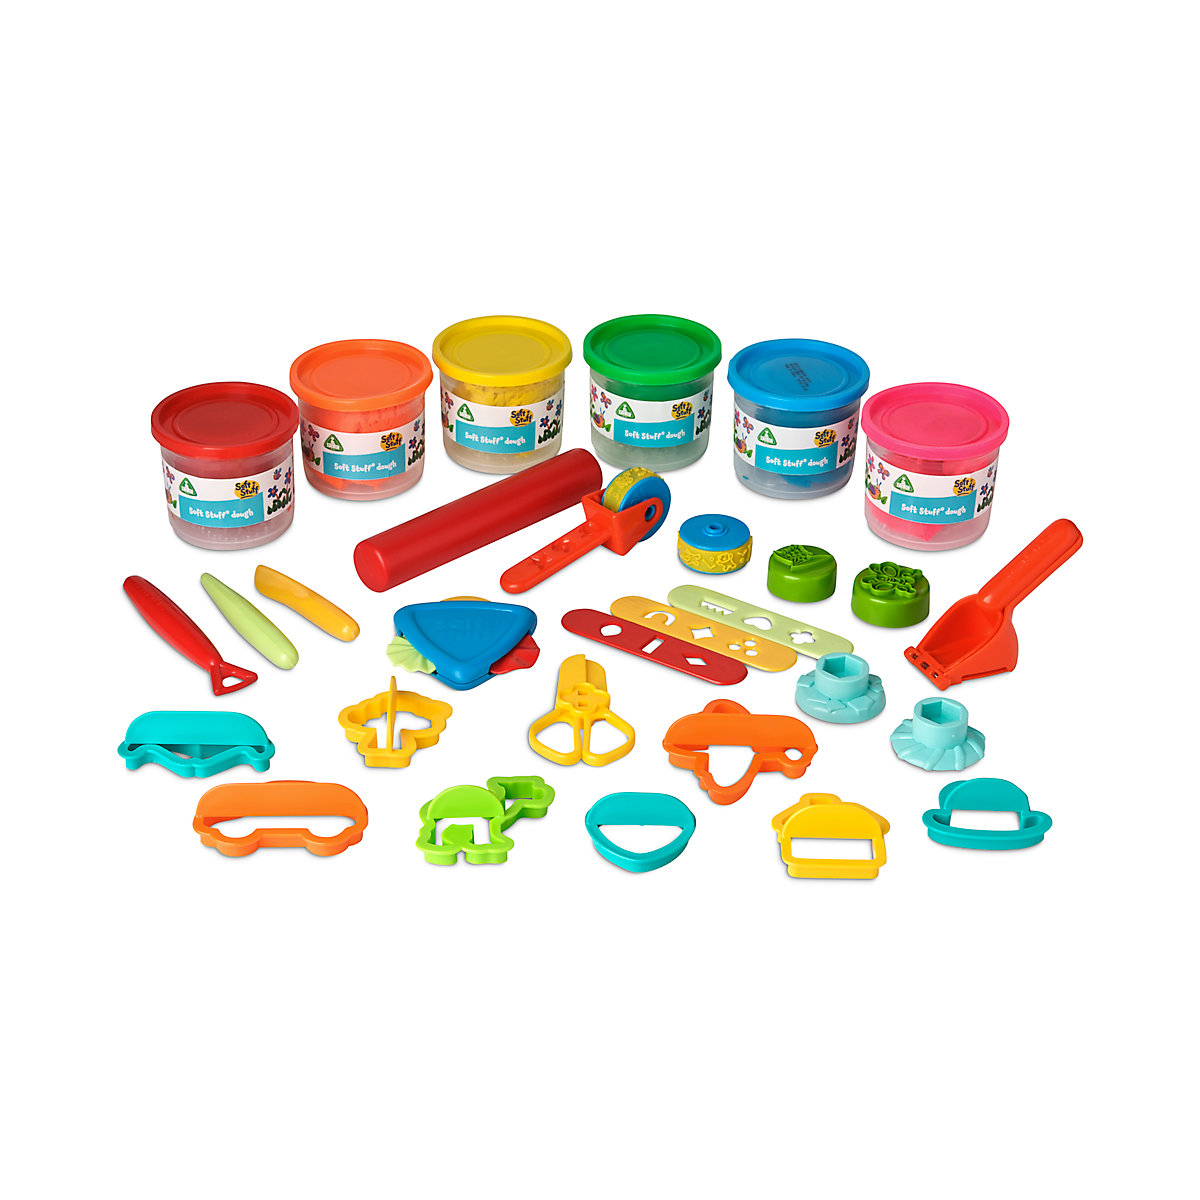 New ELC Boys and Girls Soft Stuff Bumper Dough and Tool Set Toy From 3 years